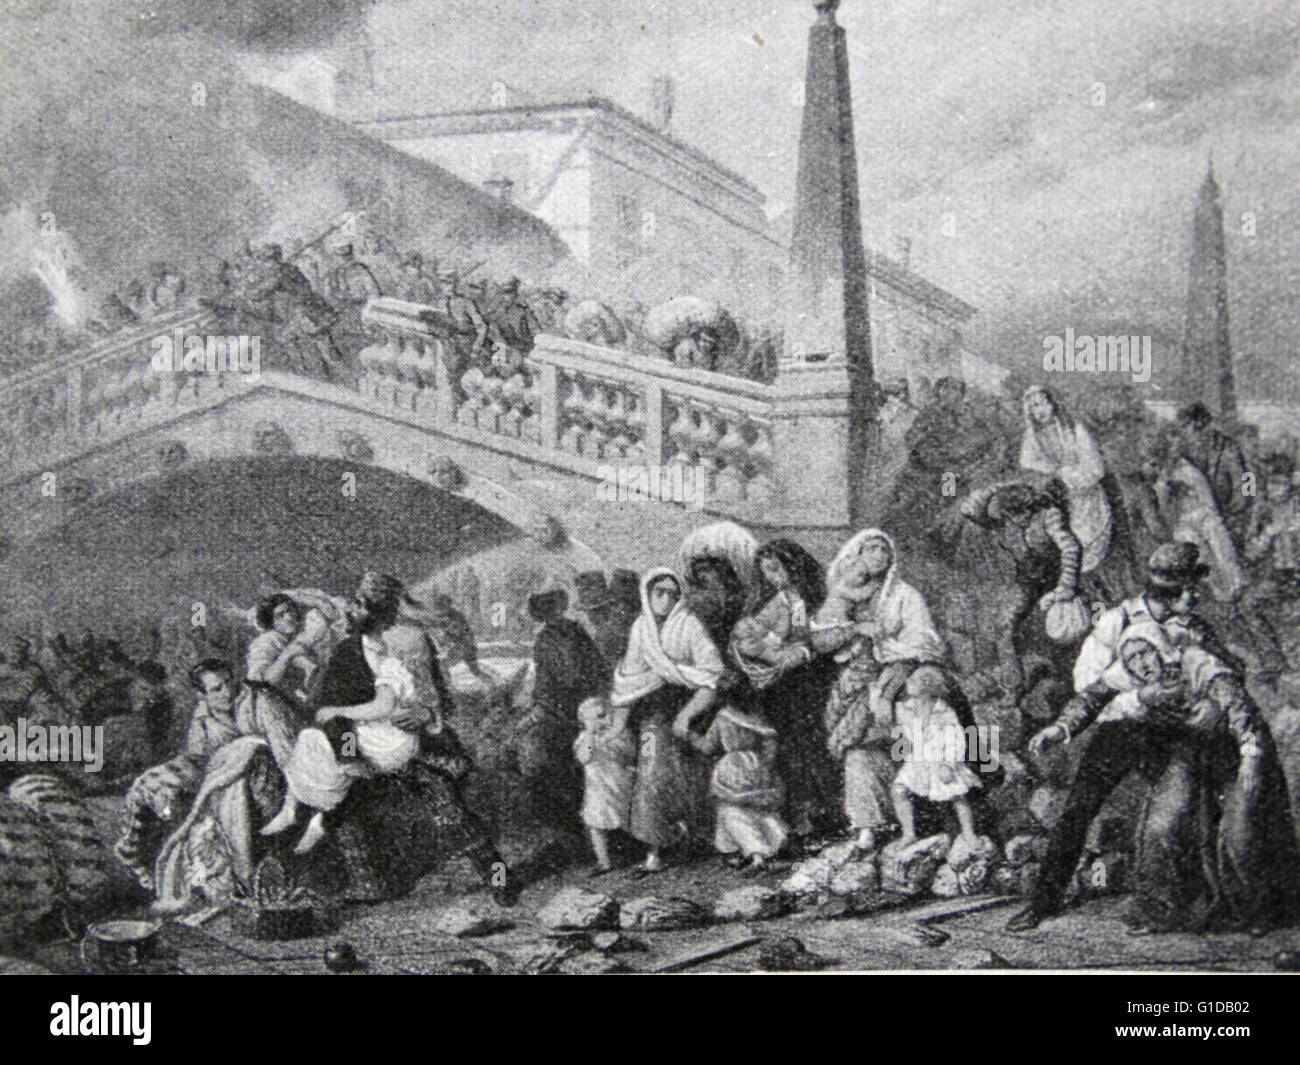 Venetian revolution against the Austrians. 'In the hope of re-establishing her ancient form of government under - Stock Image